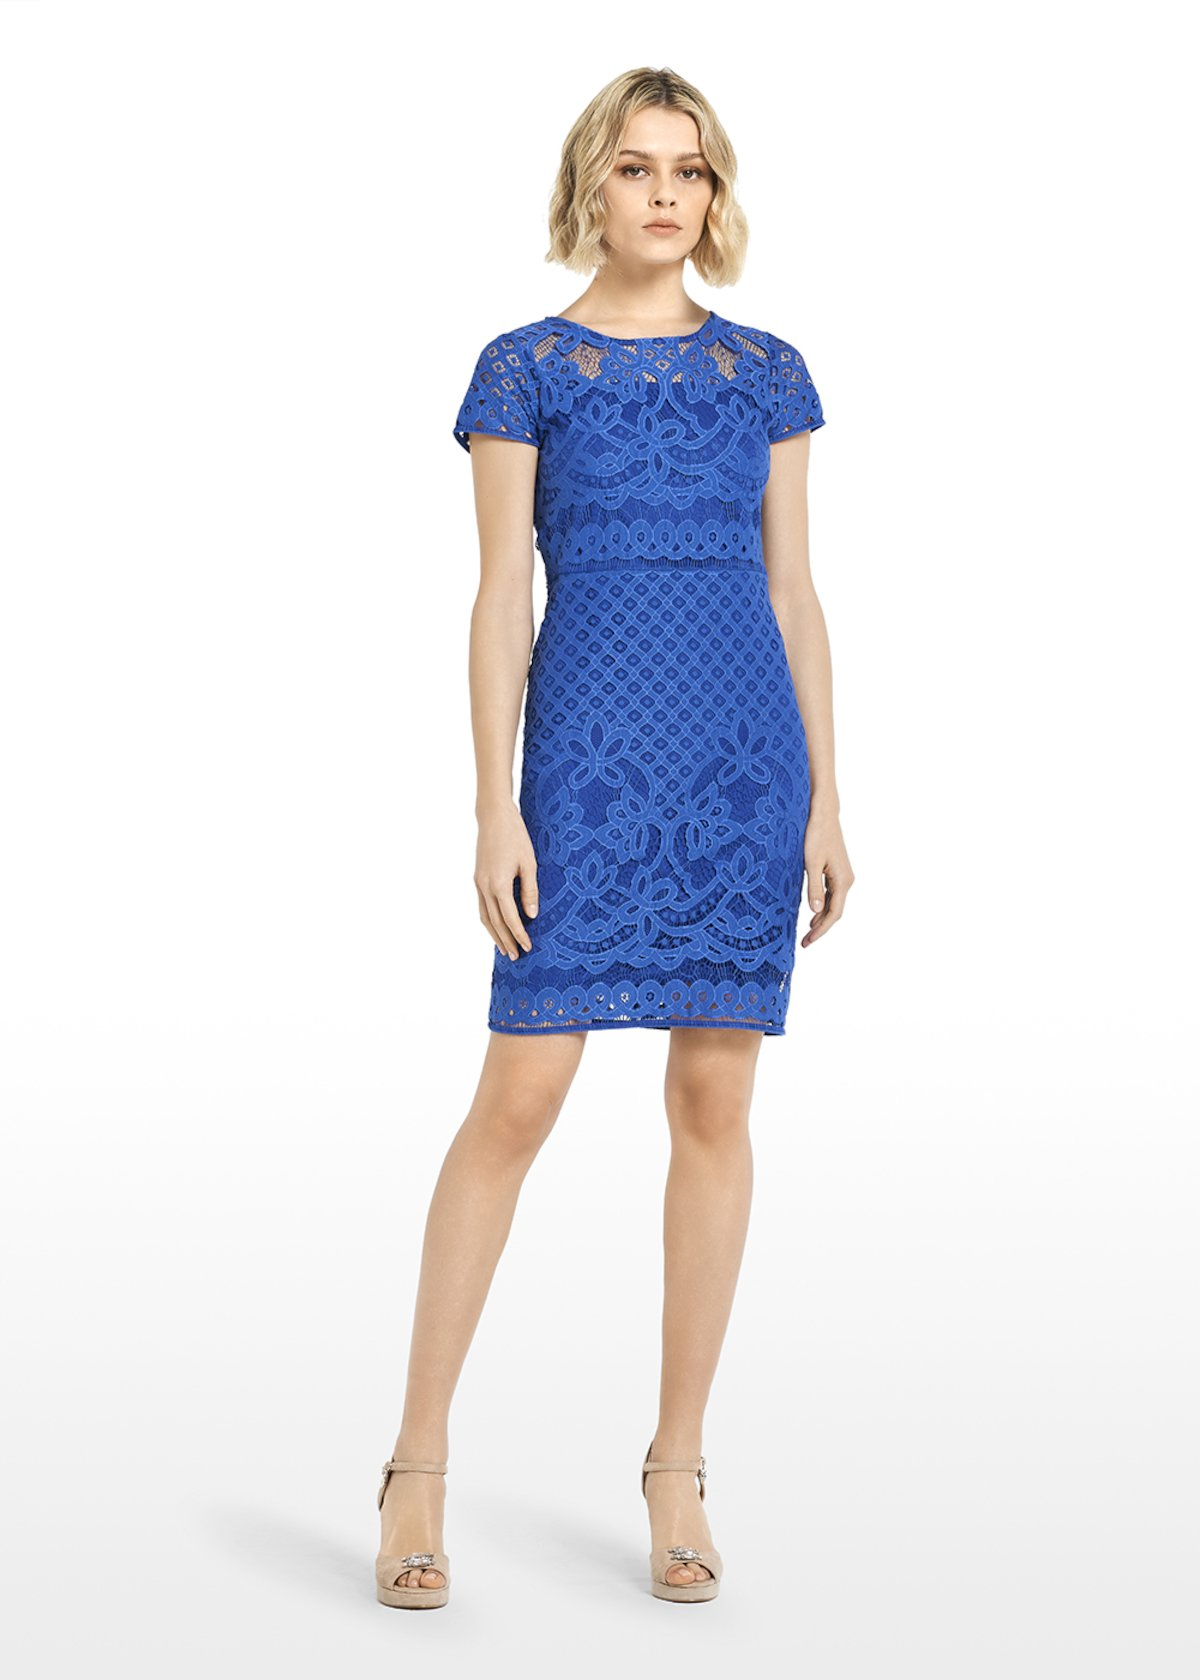 Amel dress lace effect mineral colour - Mineral - Woman - Category image